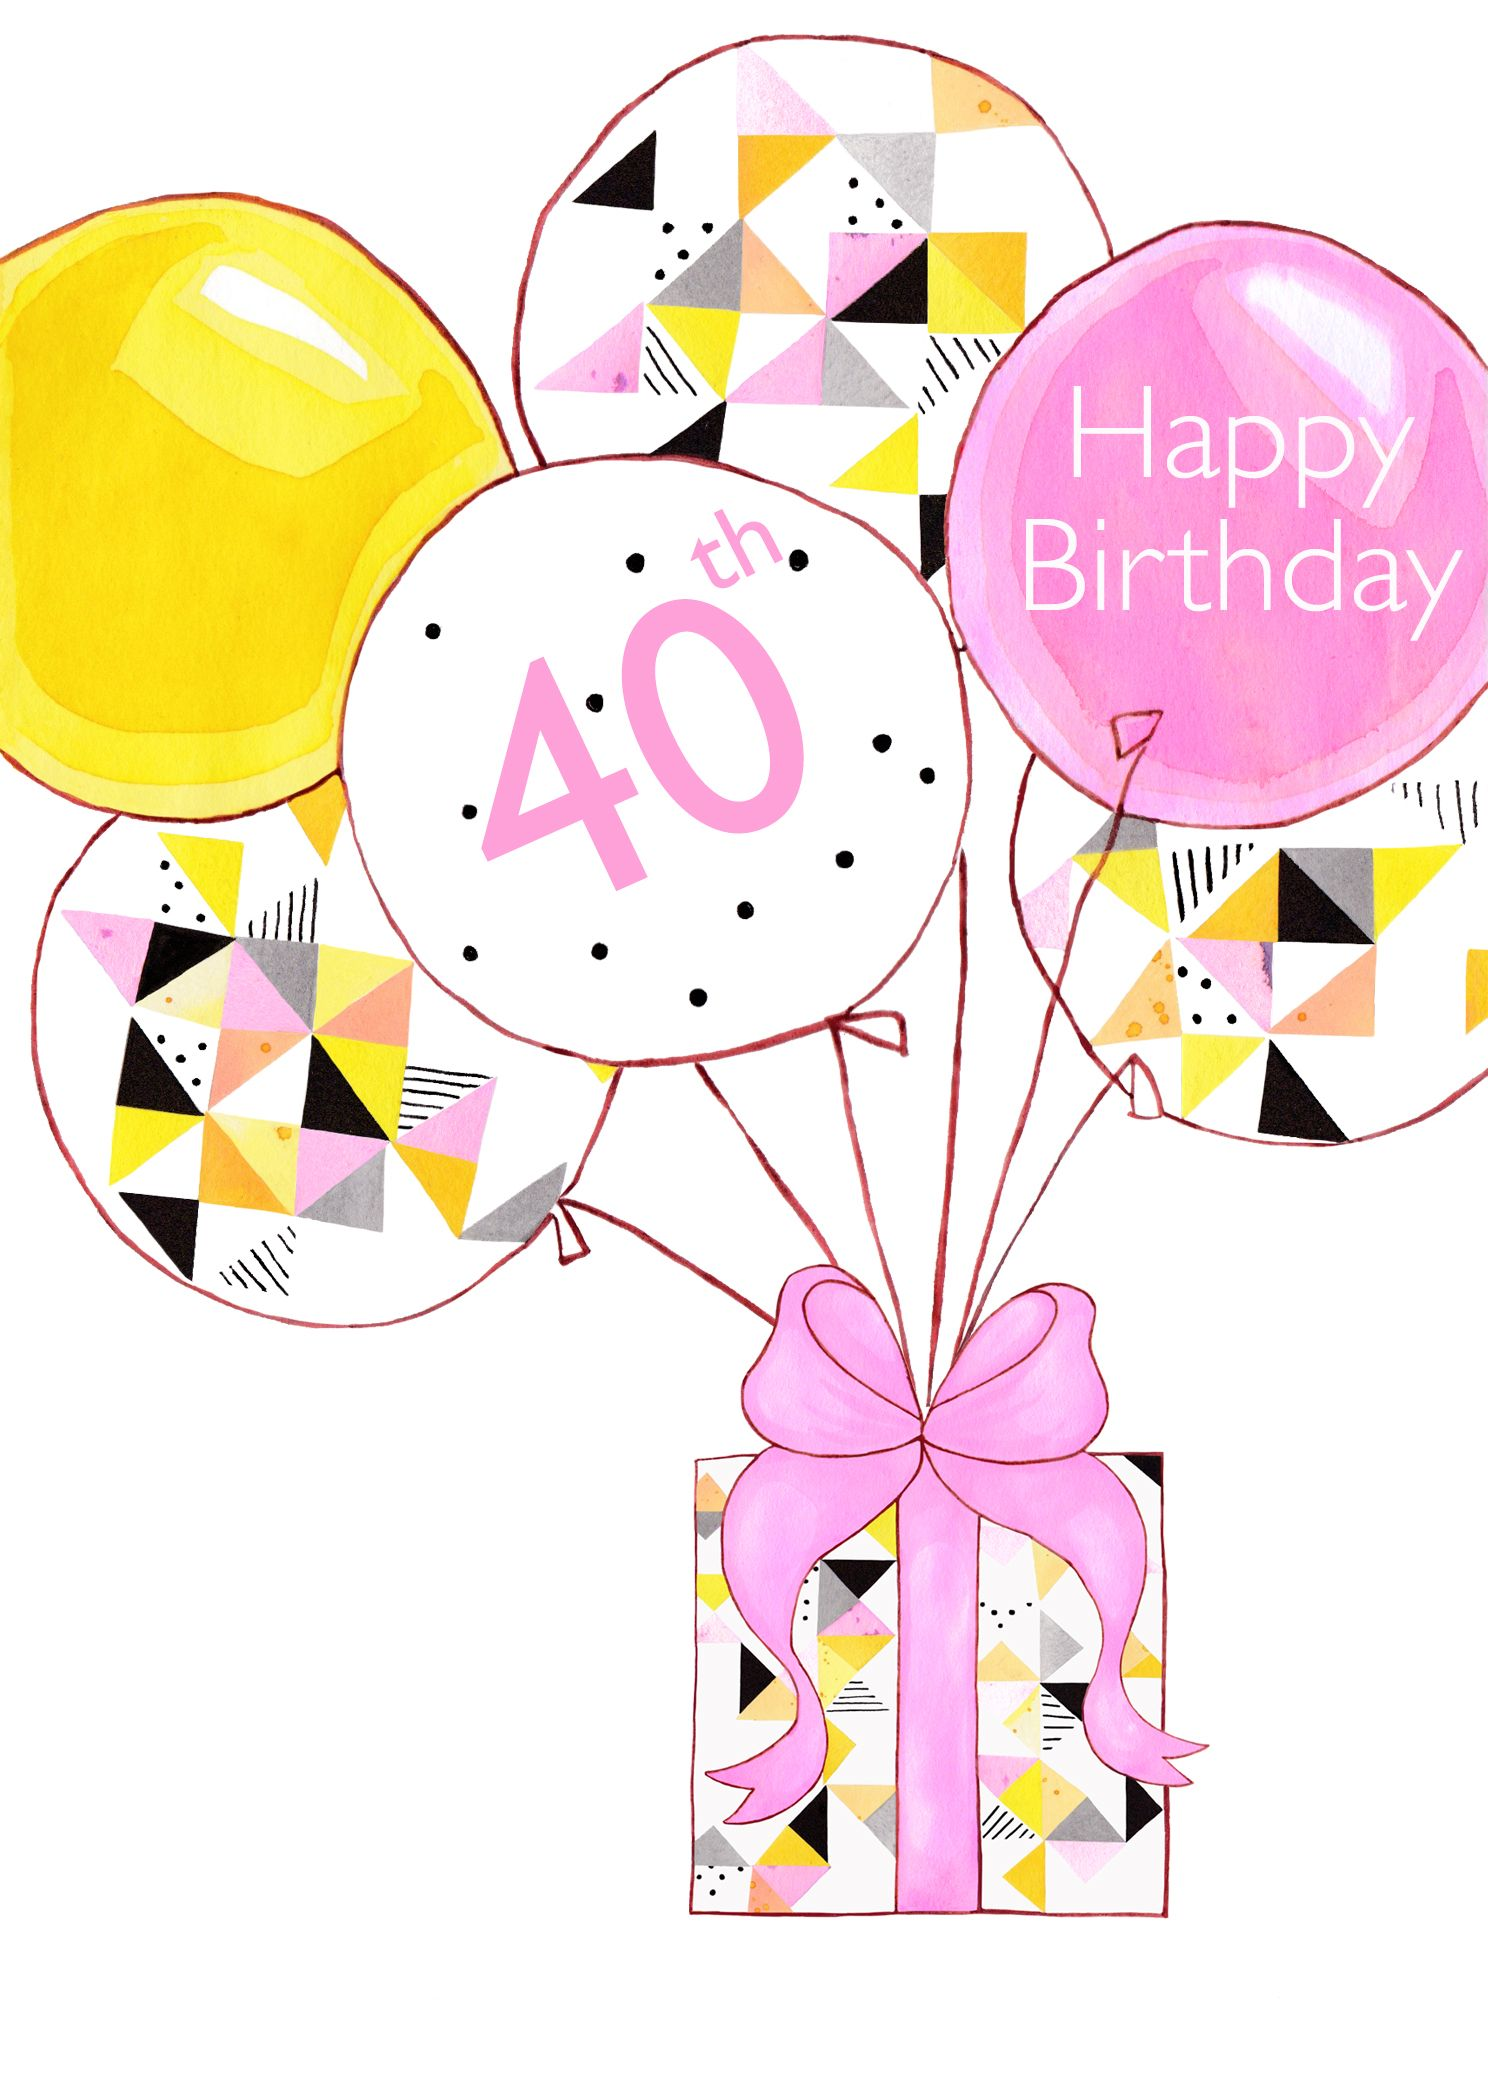 40th Birthday Card Present Balloons 250 Contemporary Geometric Design Blank By Between Sisters Studio